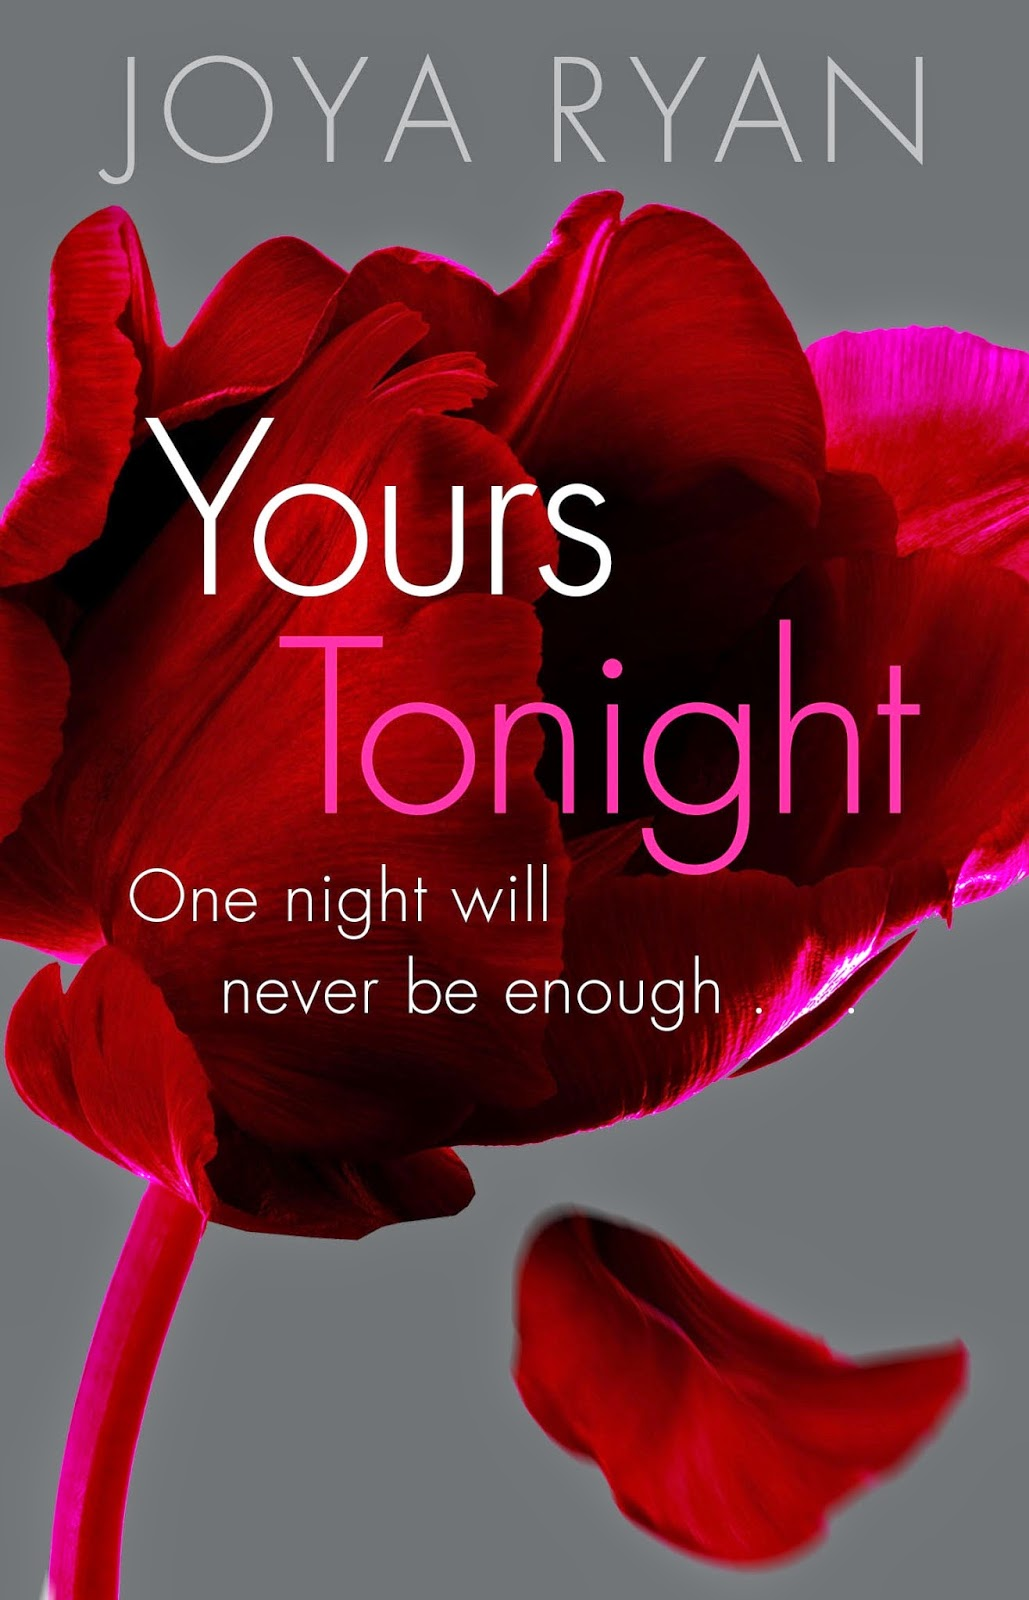 https://www.goodreads.com/book/show/24733119-yours-tonight